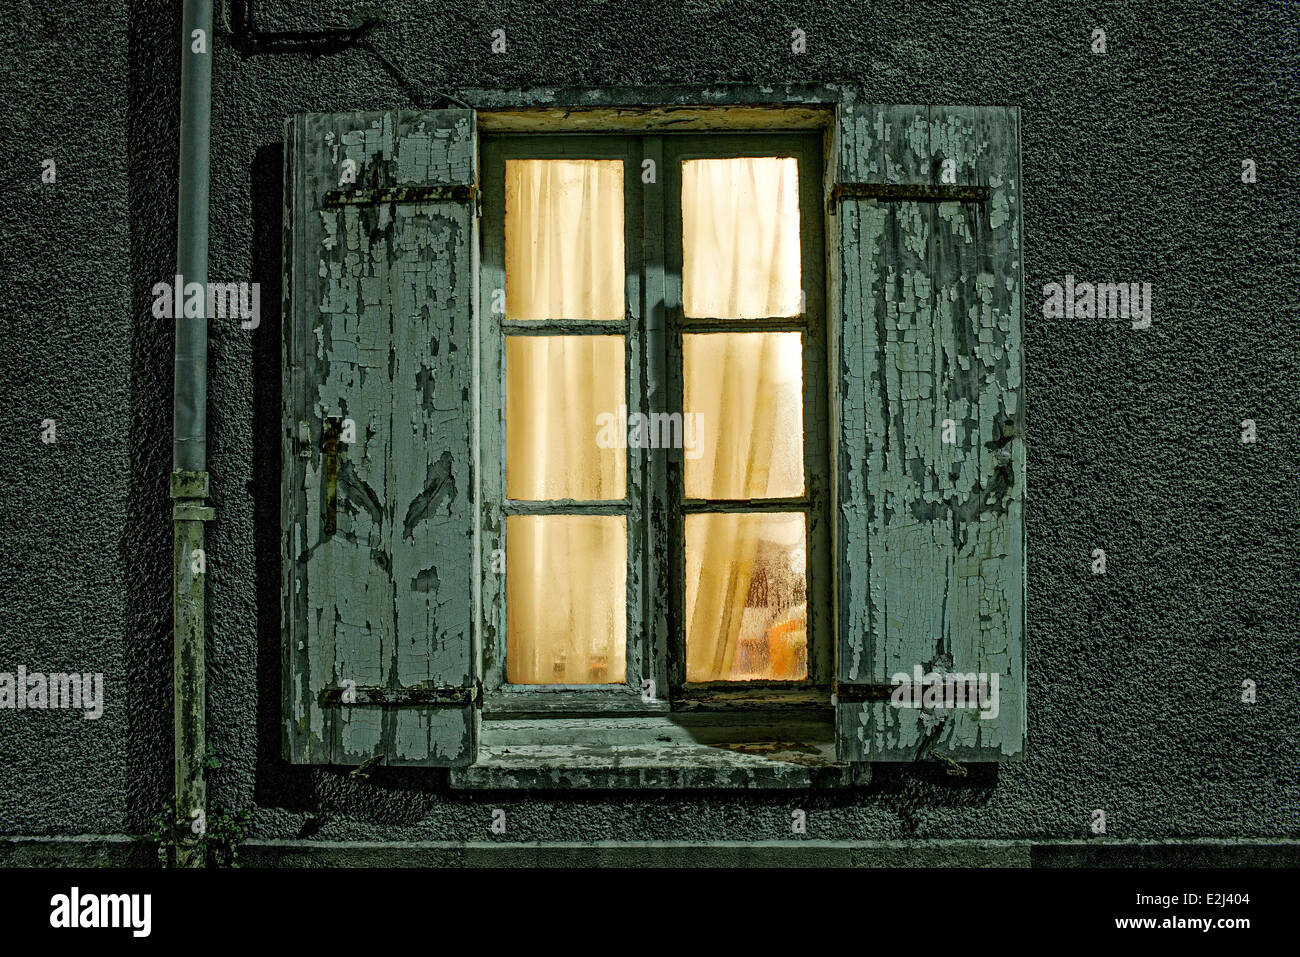 Window with dilapidated shutters illuminated at night - Stock Image